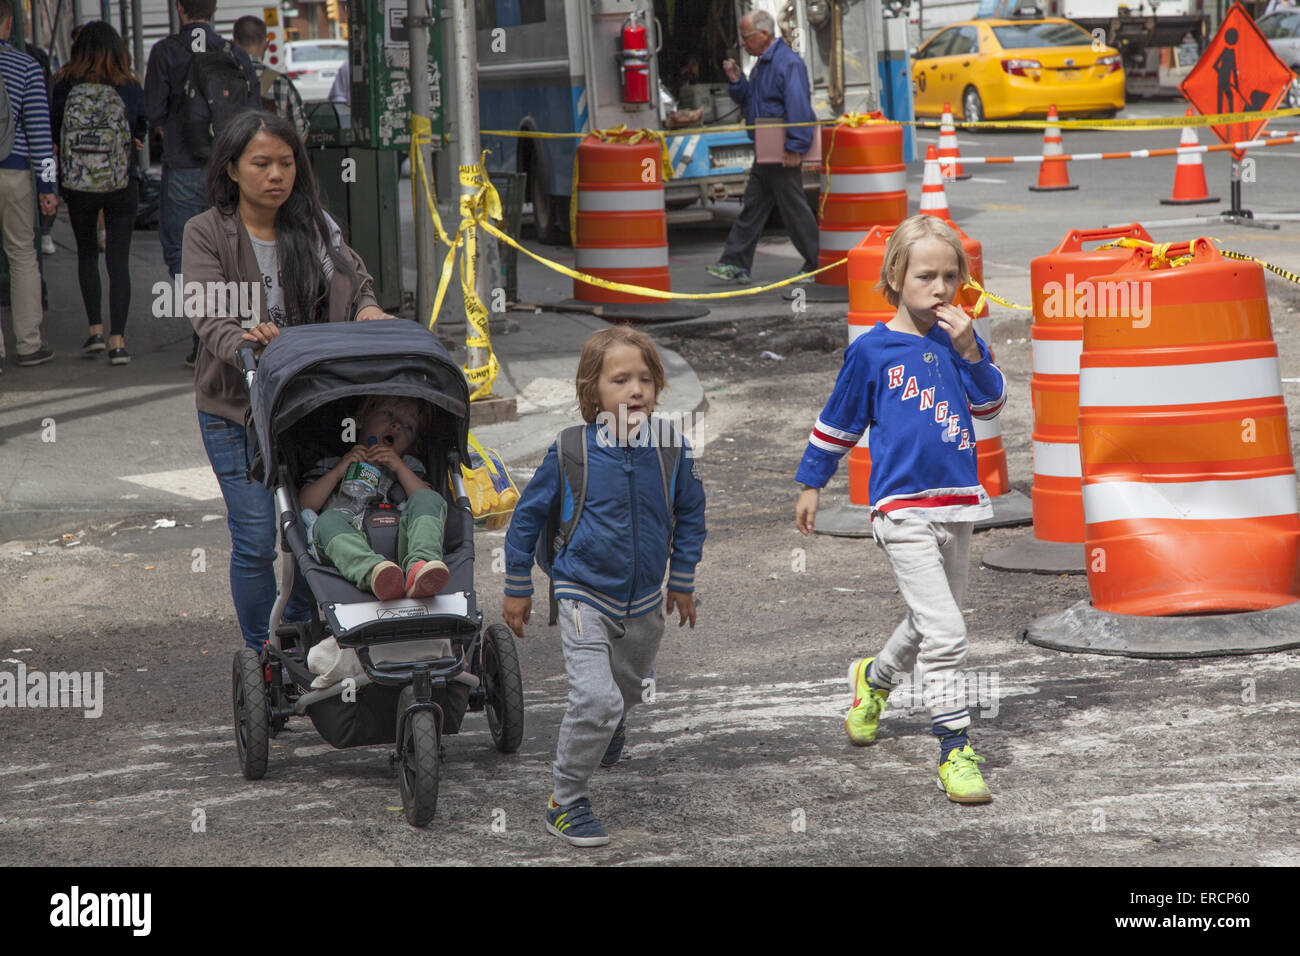 Children with nanny on their way home after school in the highly urban Tribeca neighborhood in Manhattan. - Stock Image